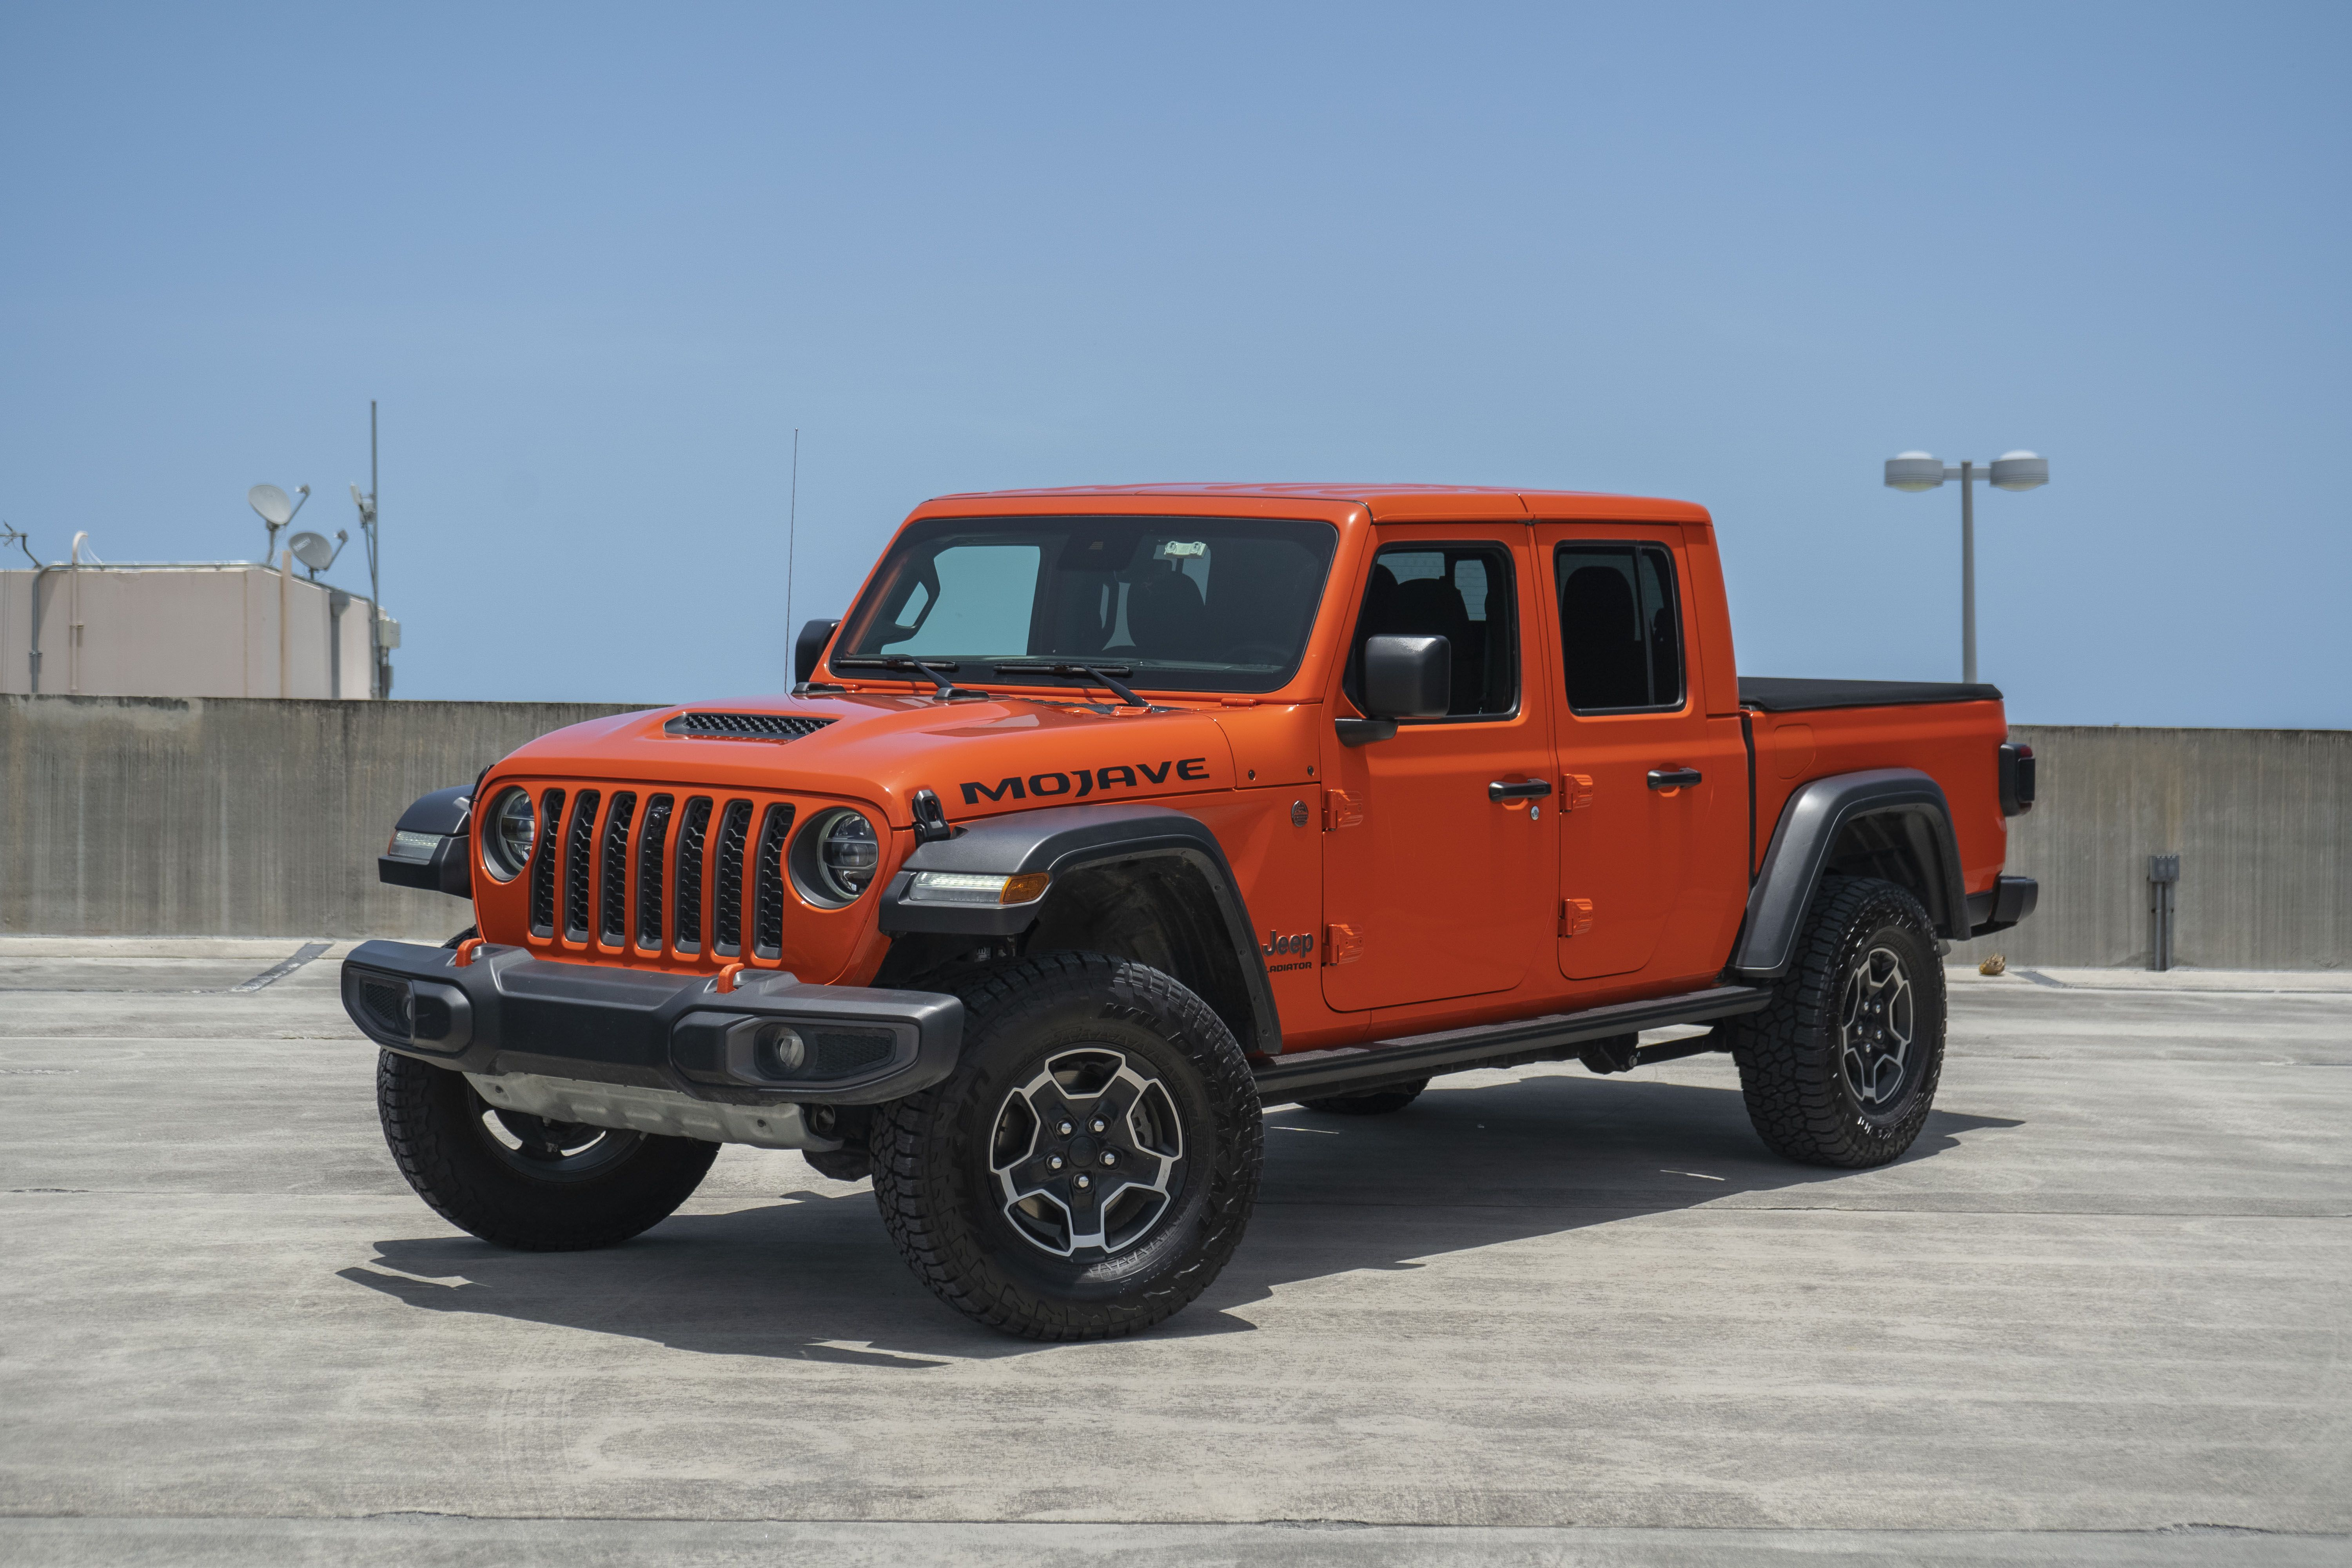 2020 Jeep Gladiator Driven Review And Impressions Top Speed In 2020 Jeep Gladiator Jeep Jeep Wrangler Girl